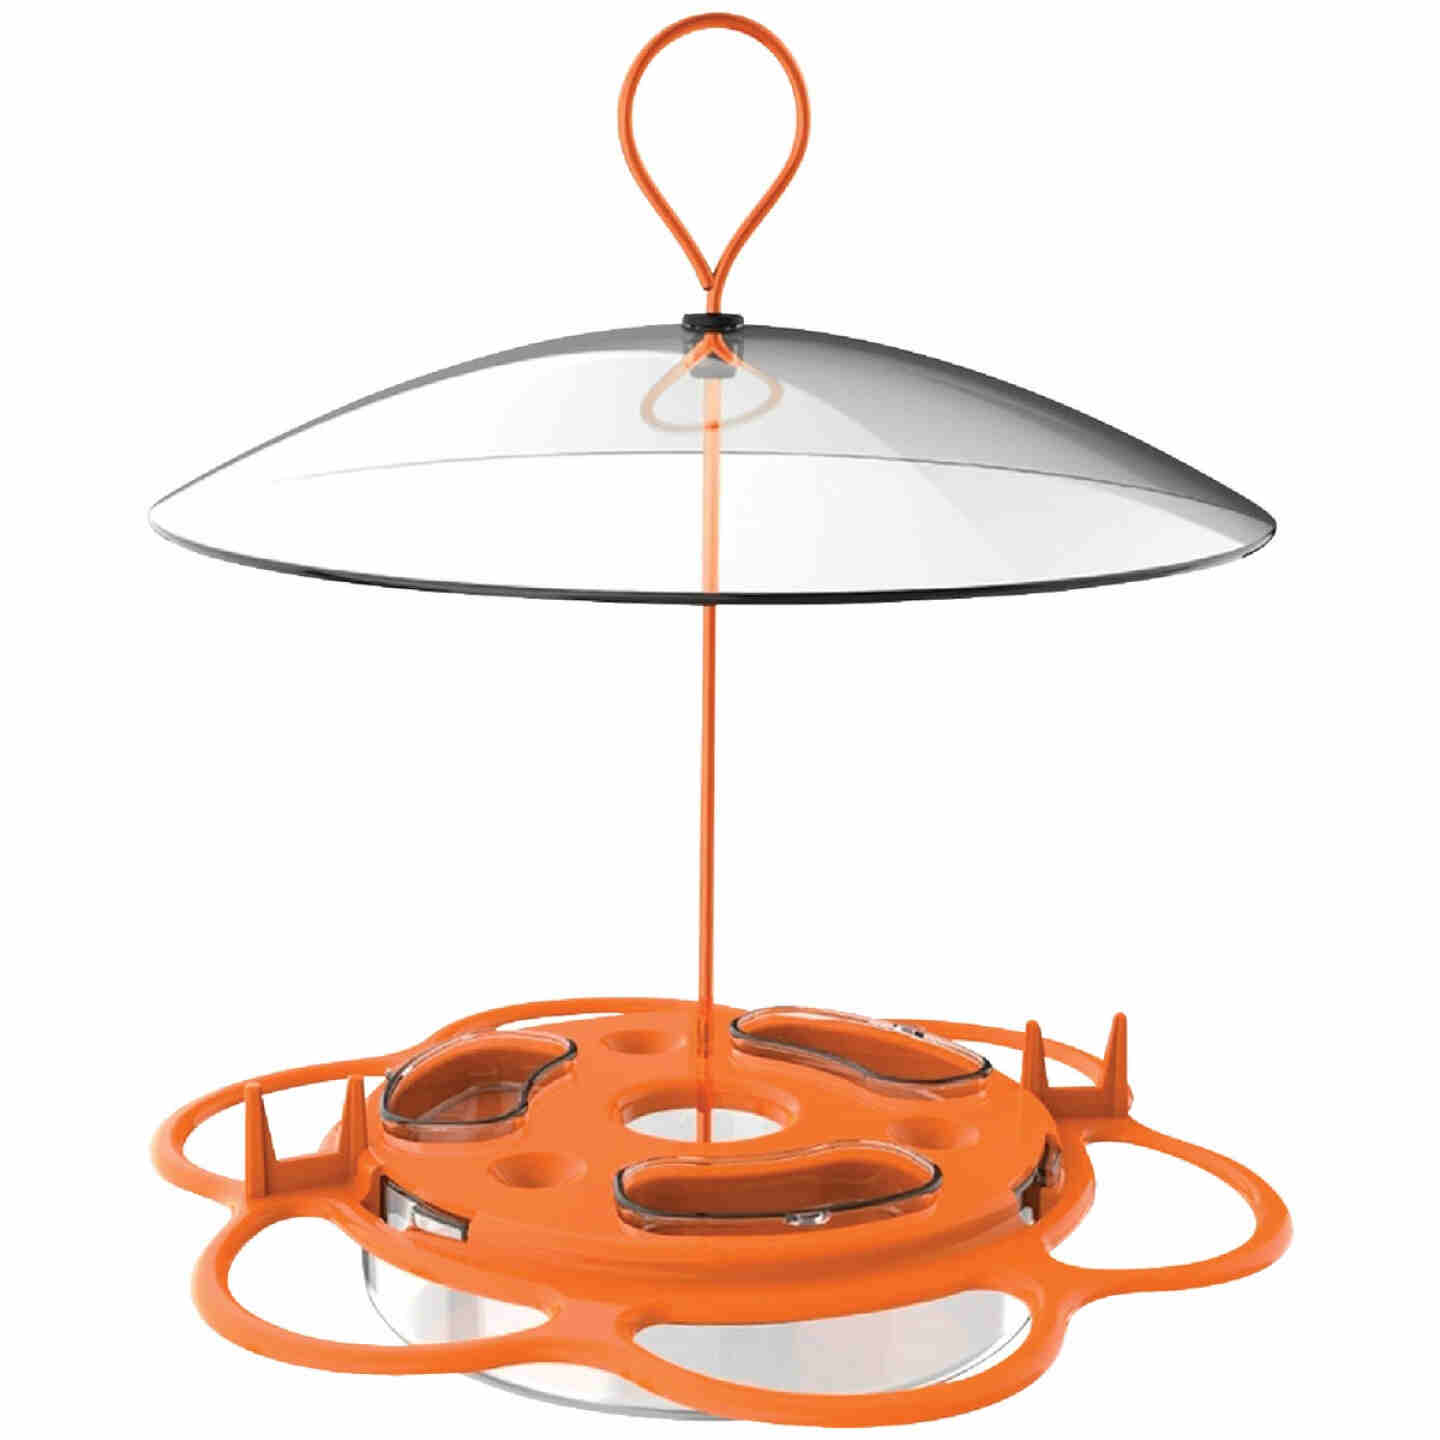 Nature's Way Plastic Oriole Buffet Feeder Image 1